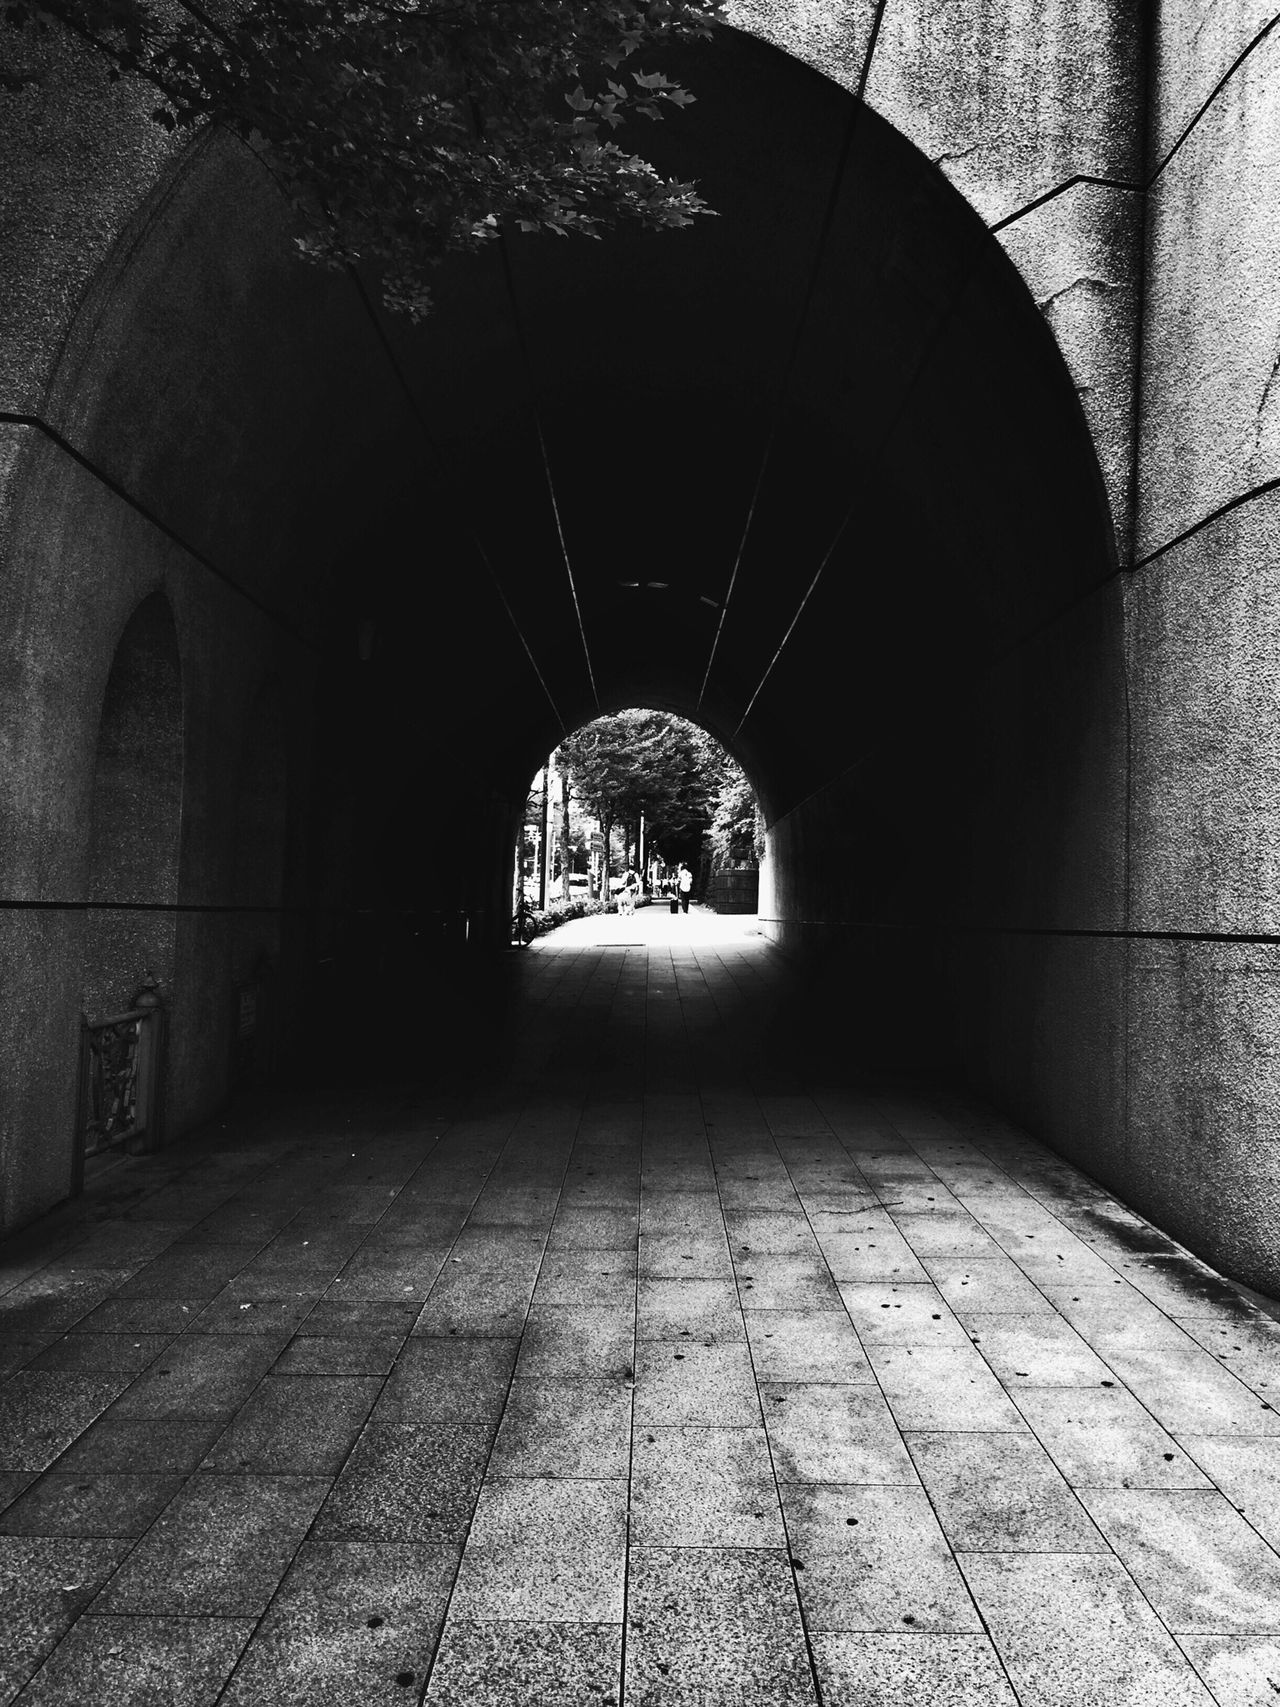 Streetphotography Cityscapes Bw_collection Blackandwhite